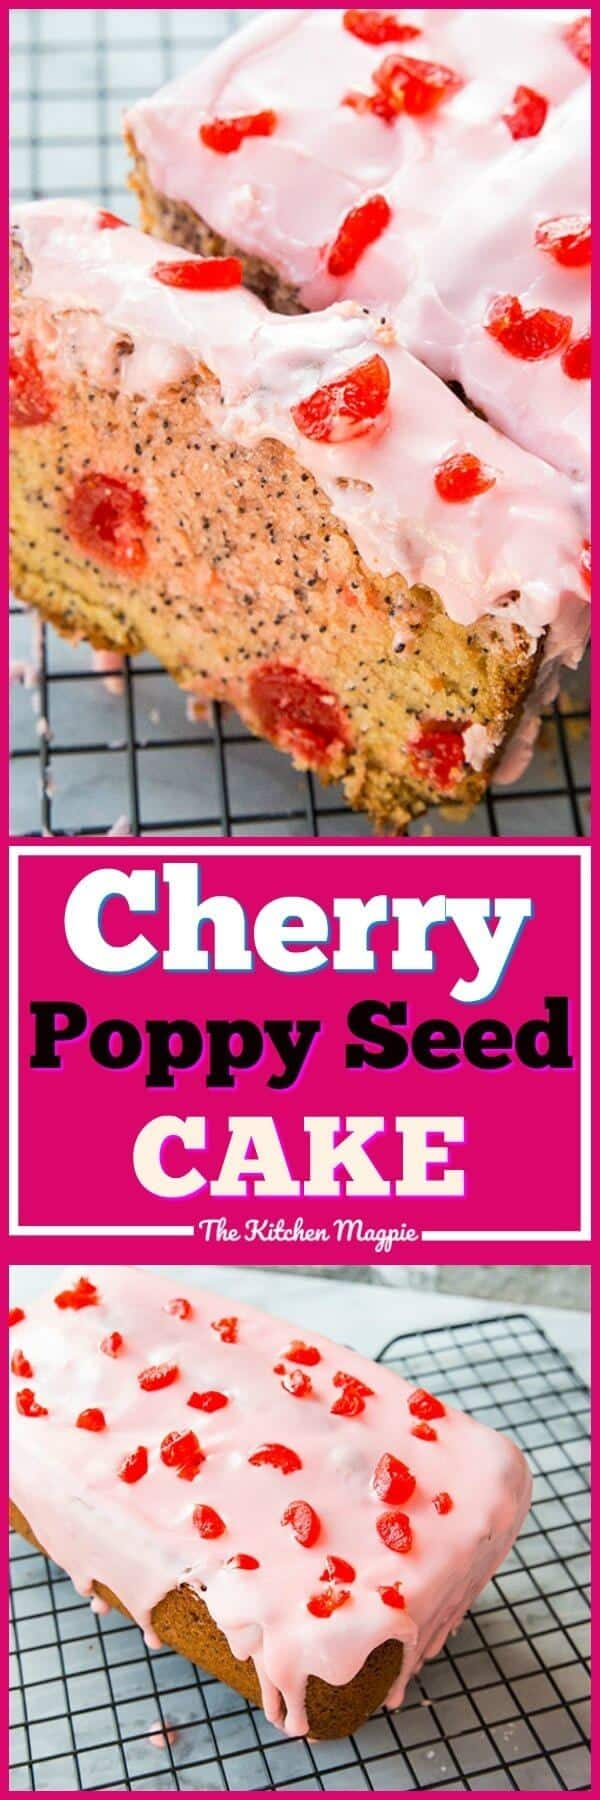 This Cherry Poppy Seed Loaf Cake is such a beautiful burst of flavour and colour in the middle of winter! The best part? It uses maraschino cherries that are cheap, cheerful and available year round so you can make this 365 days a year! #dessert #cake #cherrycake #icing #glaze #cherry